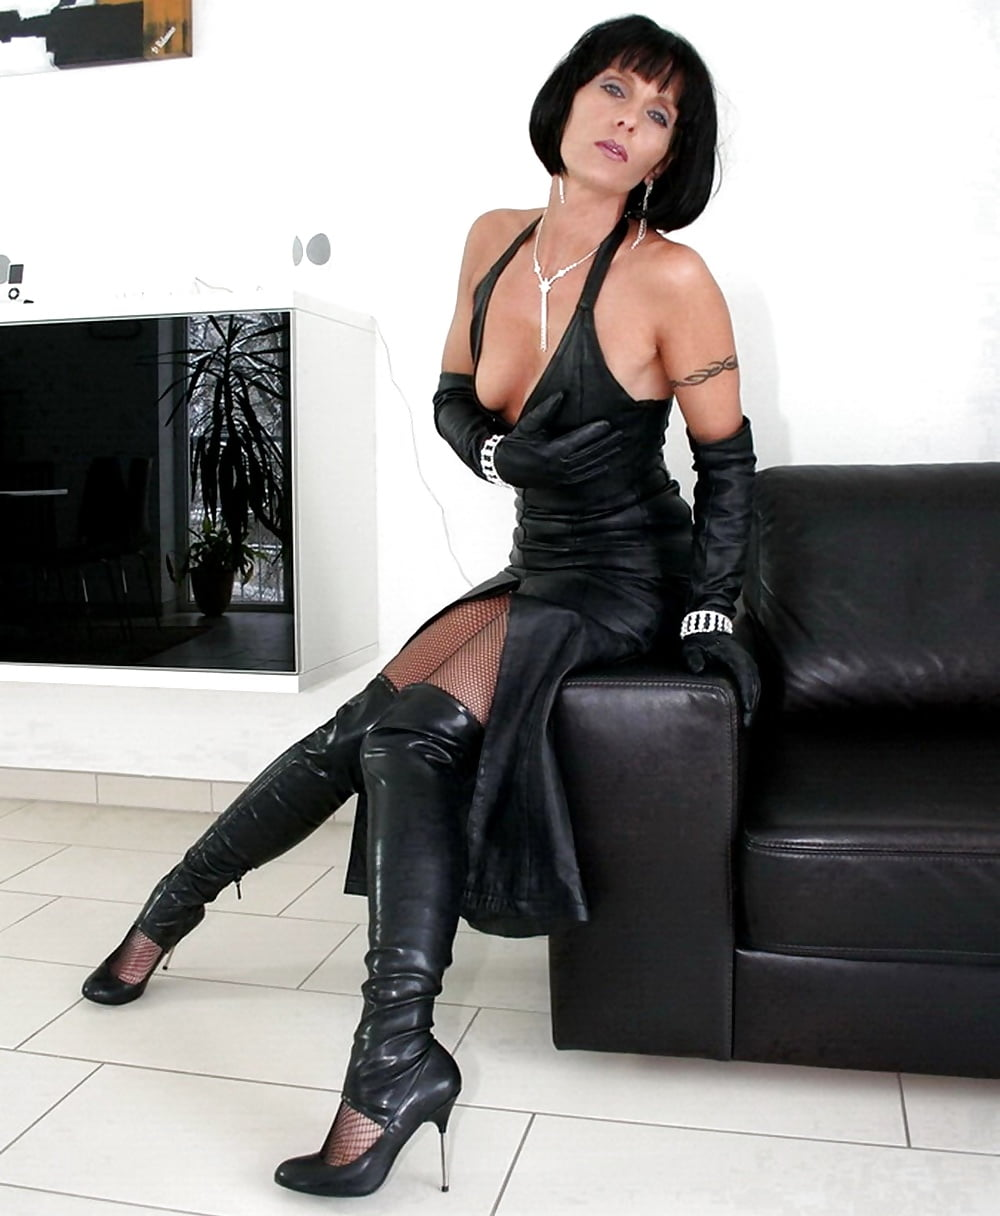 Love her sassiness mature milf leather hotwife nonnude amateur